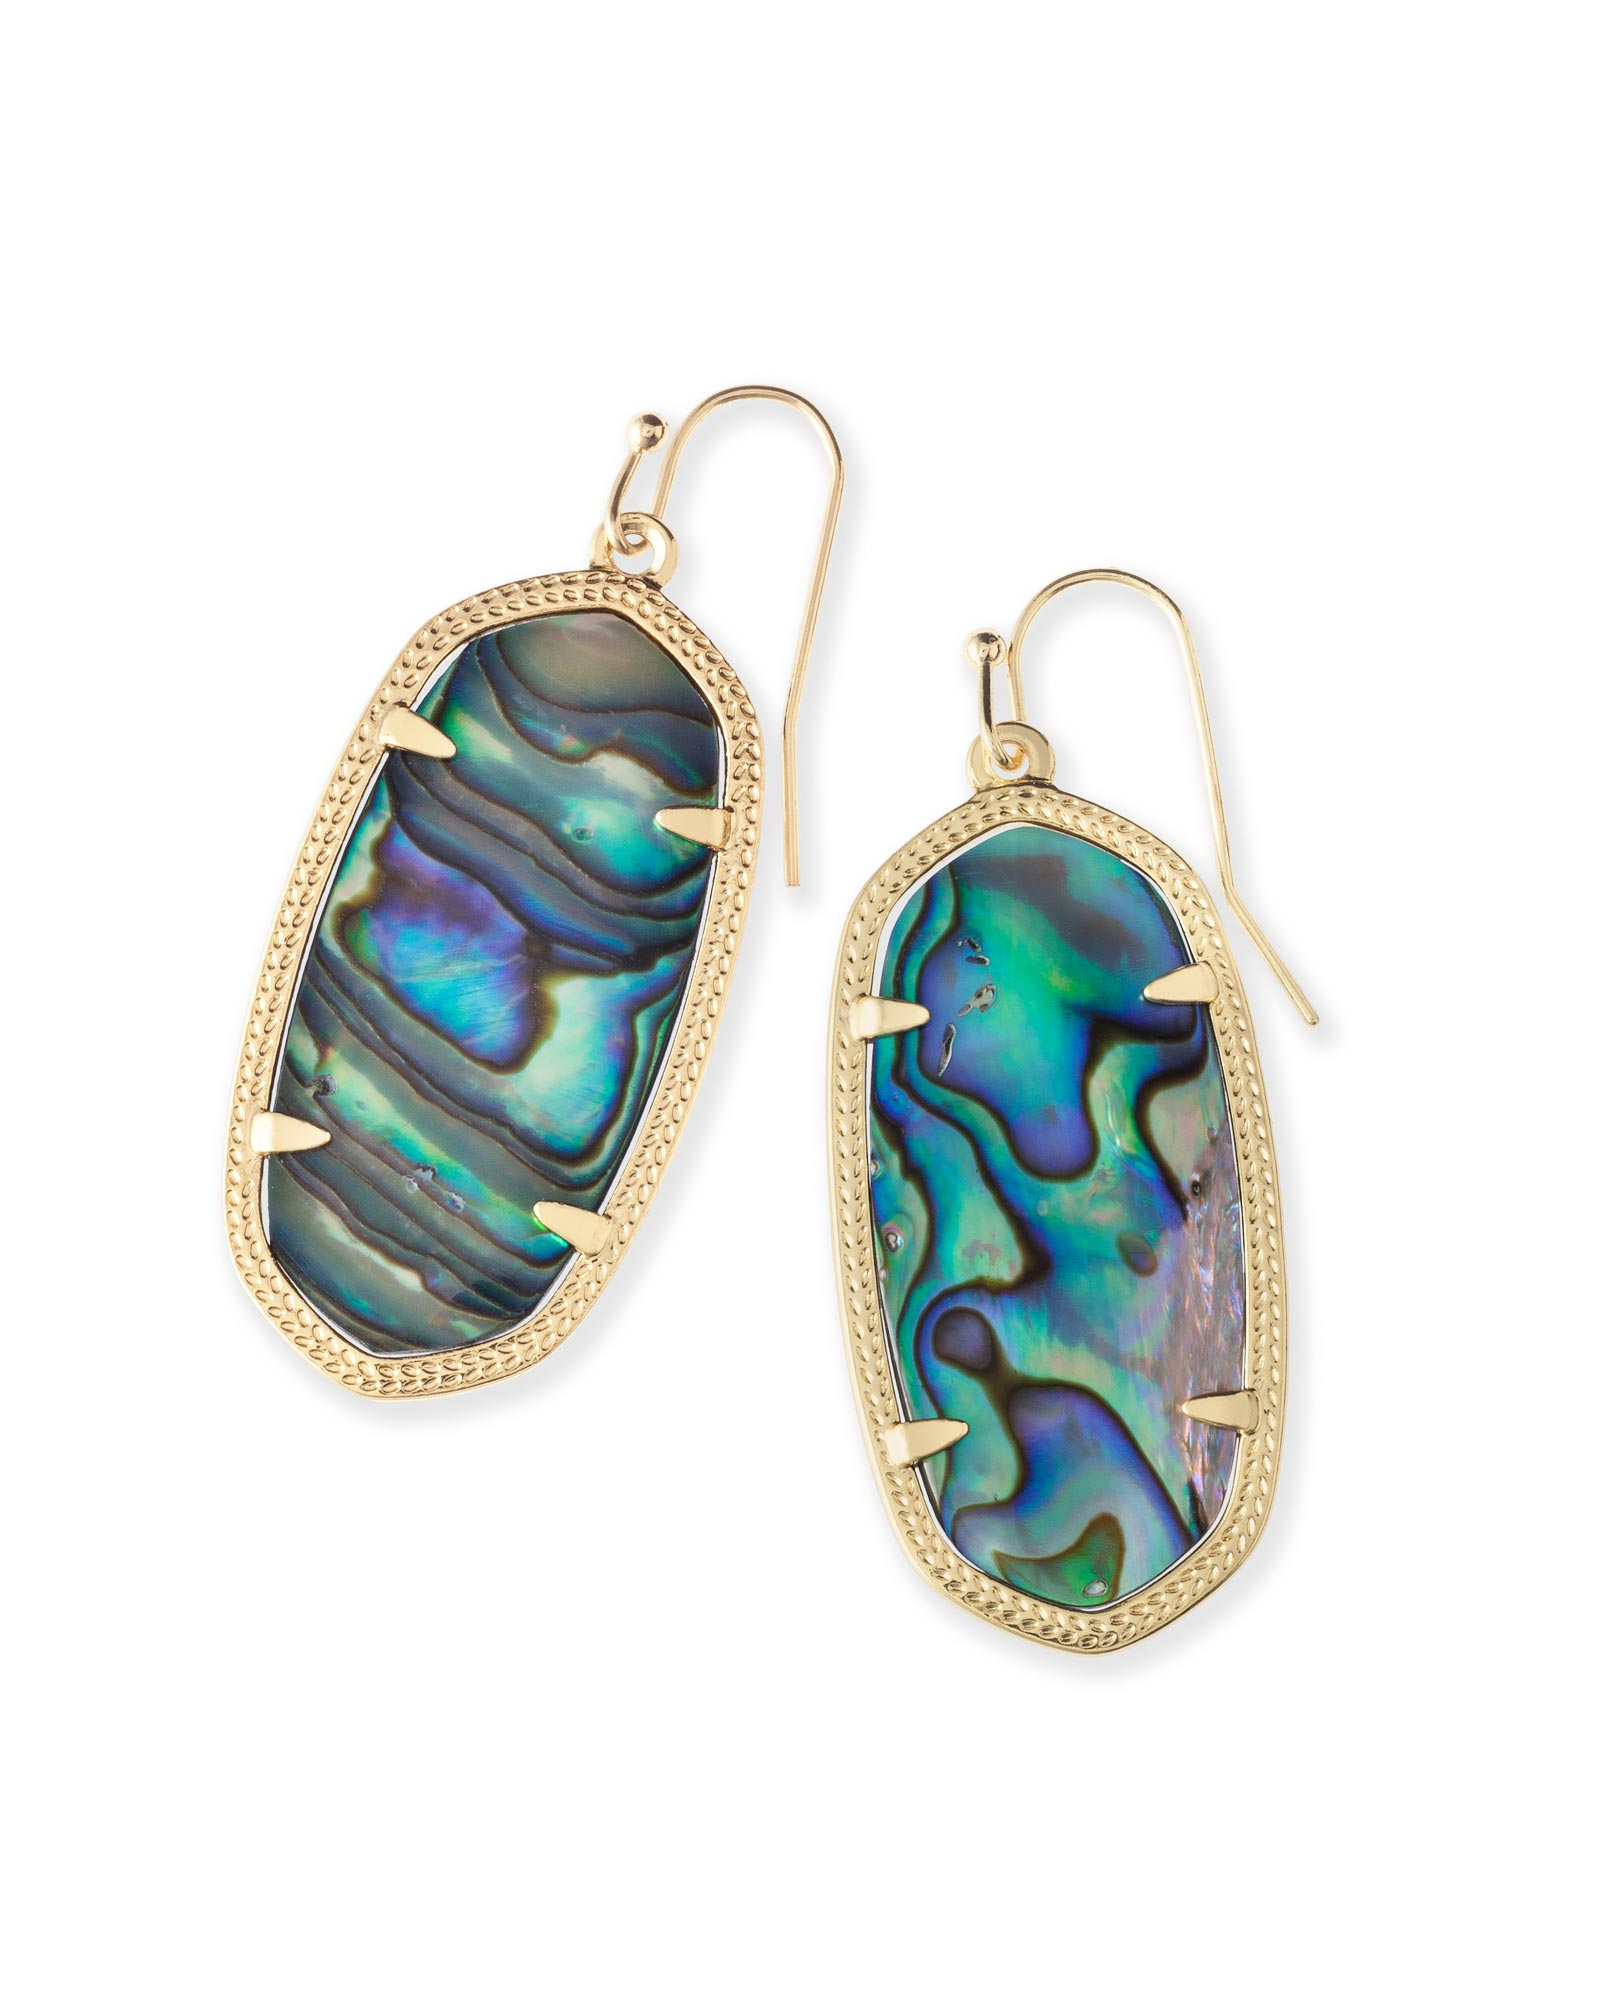 Elle Gold Drop Earrings Abalone Shell Kendra Scott